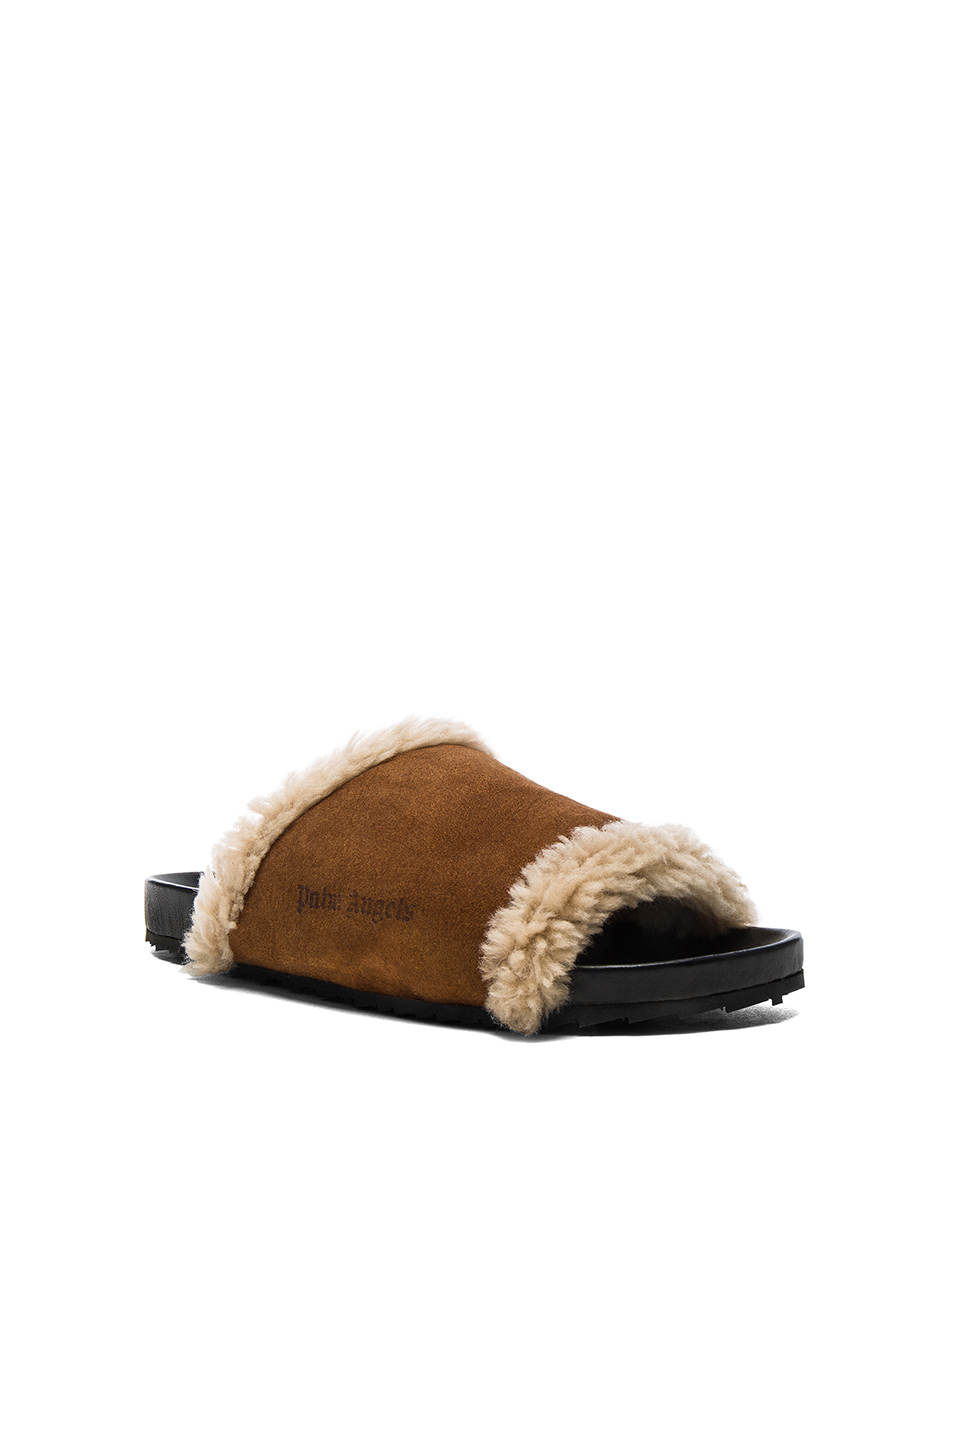 Palm Angels Lamb Shearling Slides in Brown